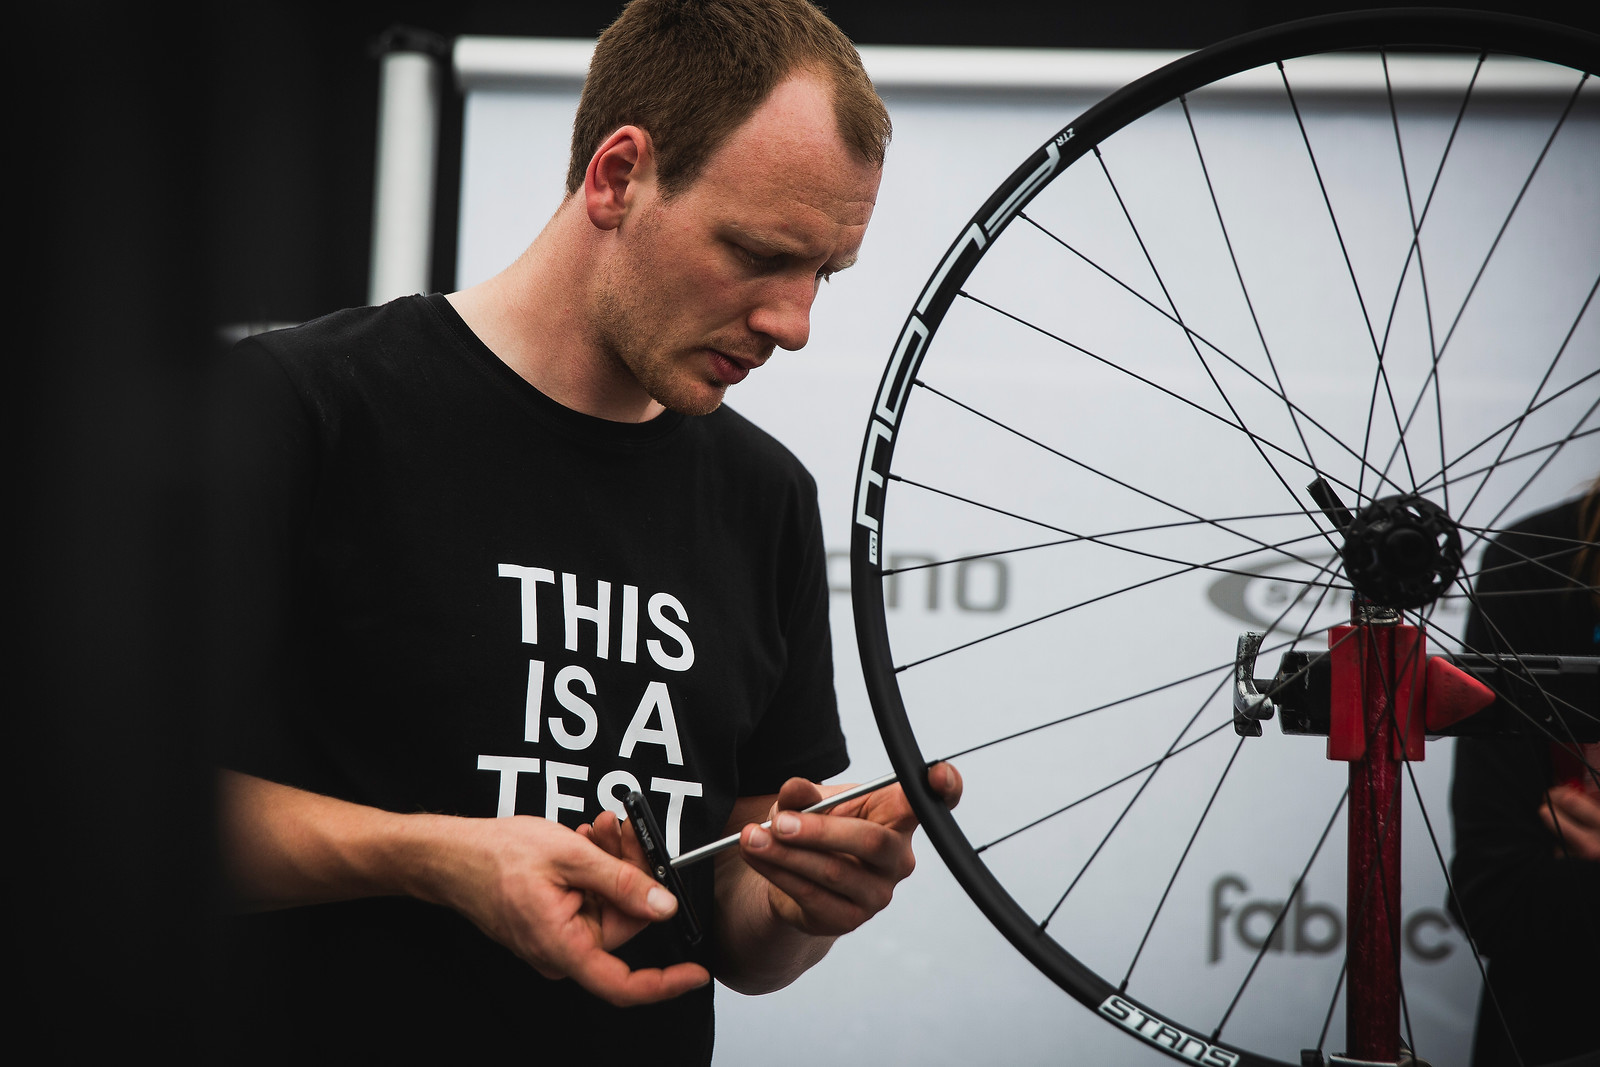 Cannondale are making it very clear. IT'S A TEST BIKE.